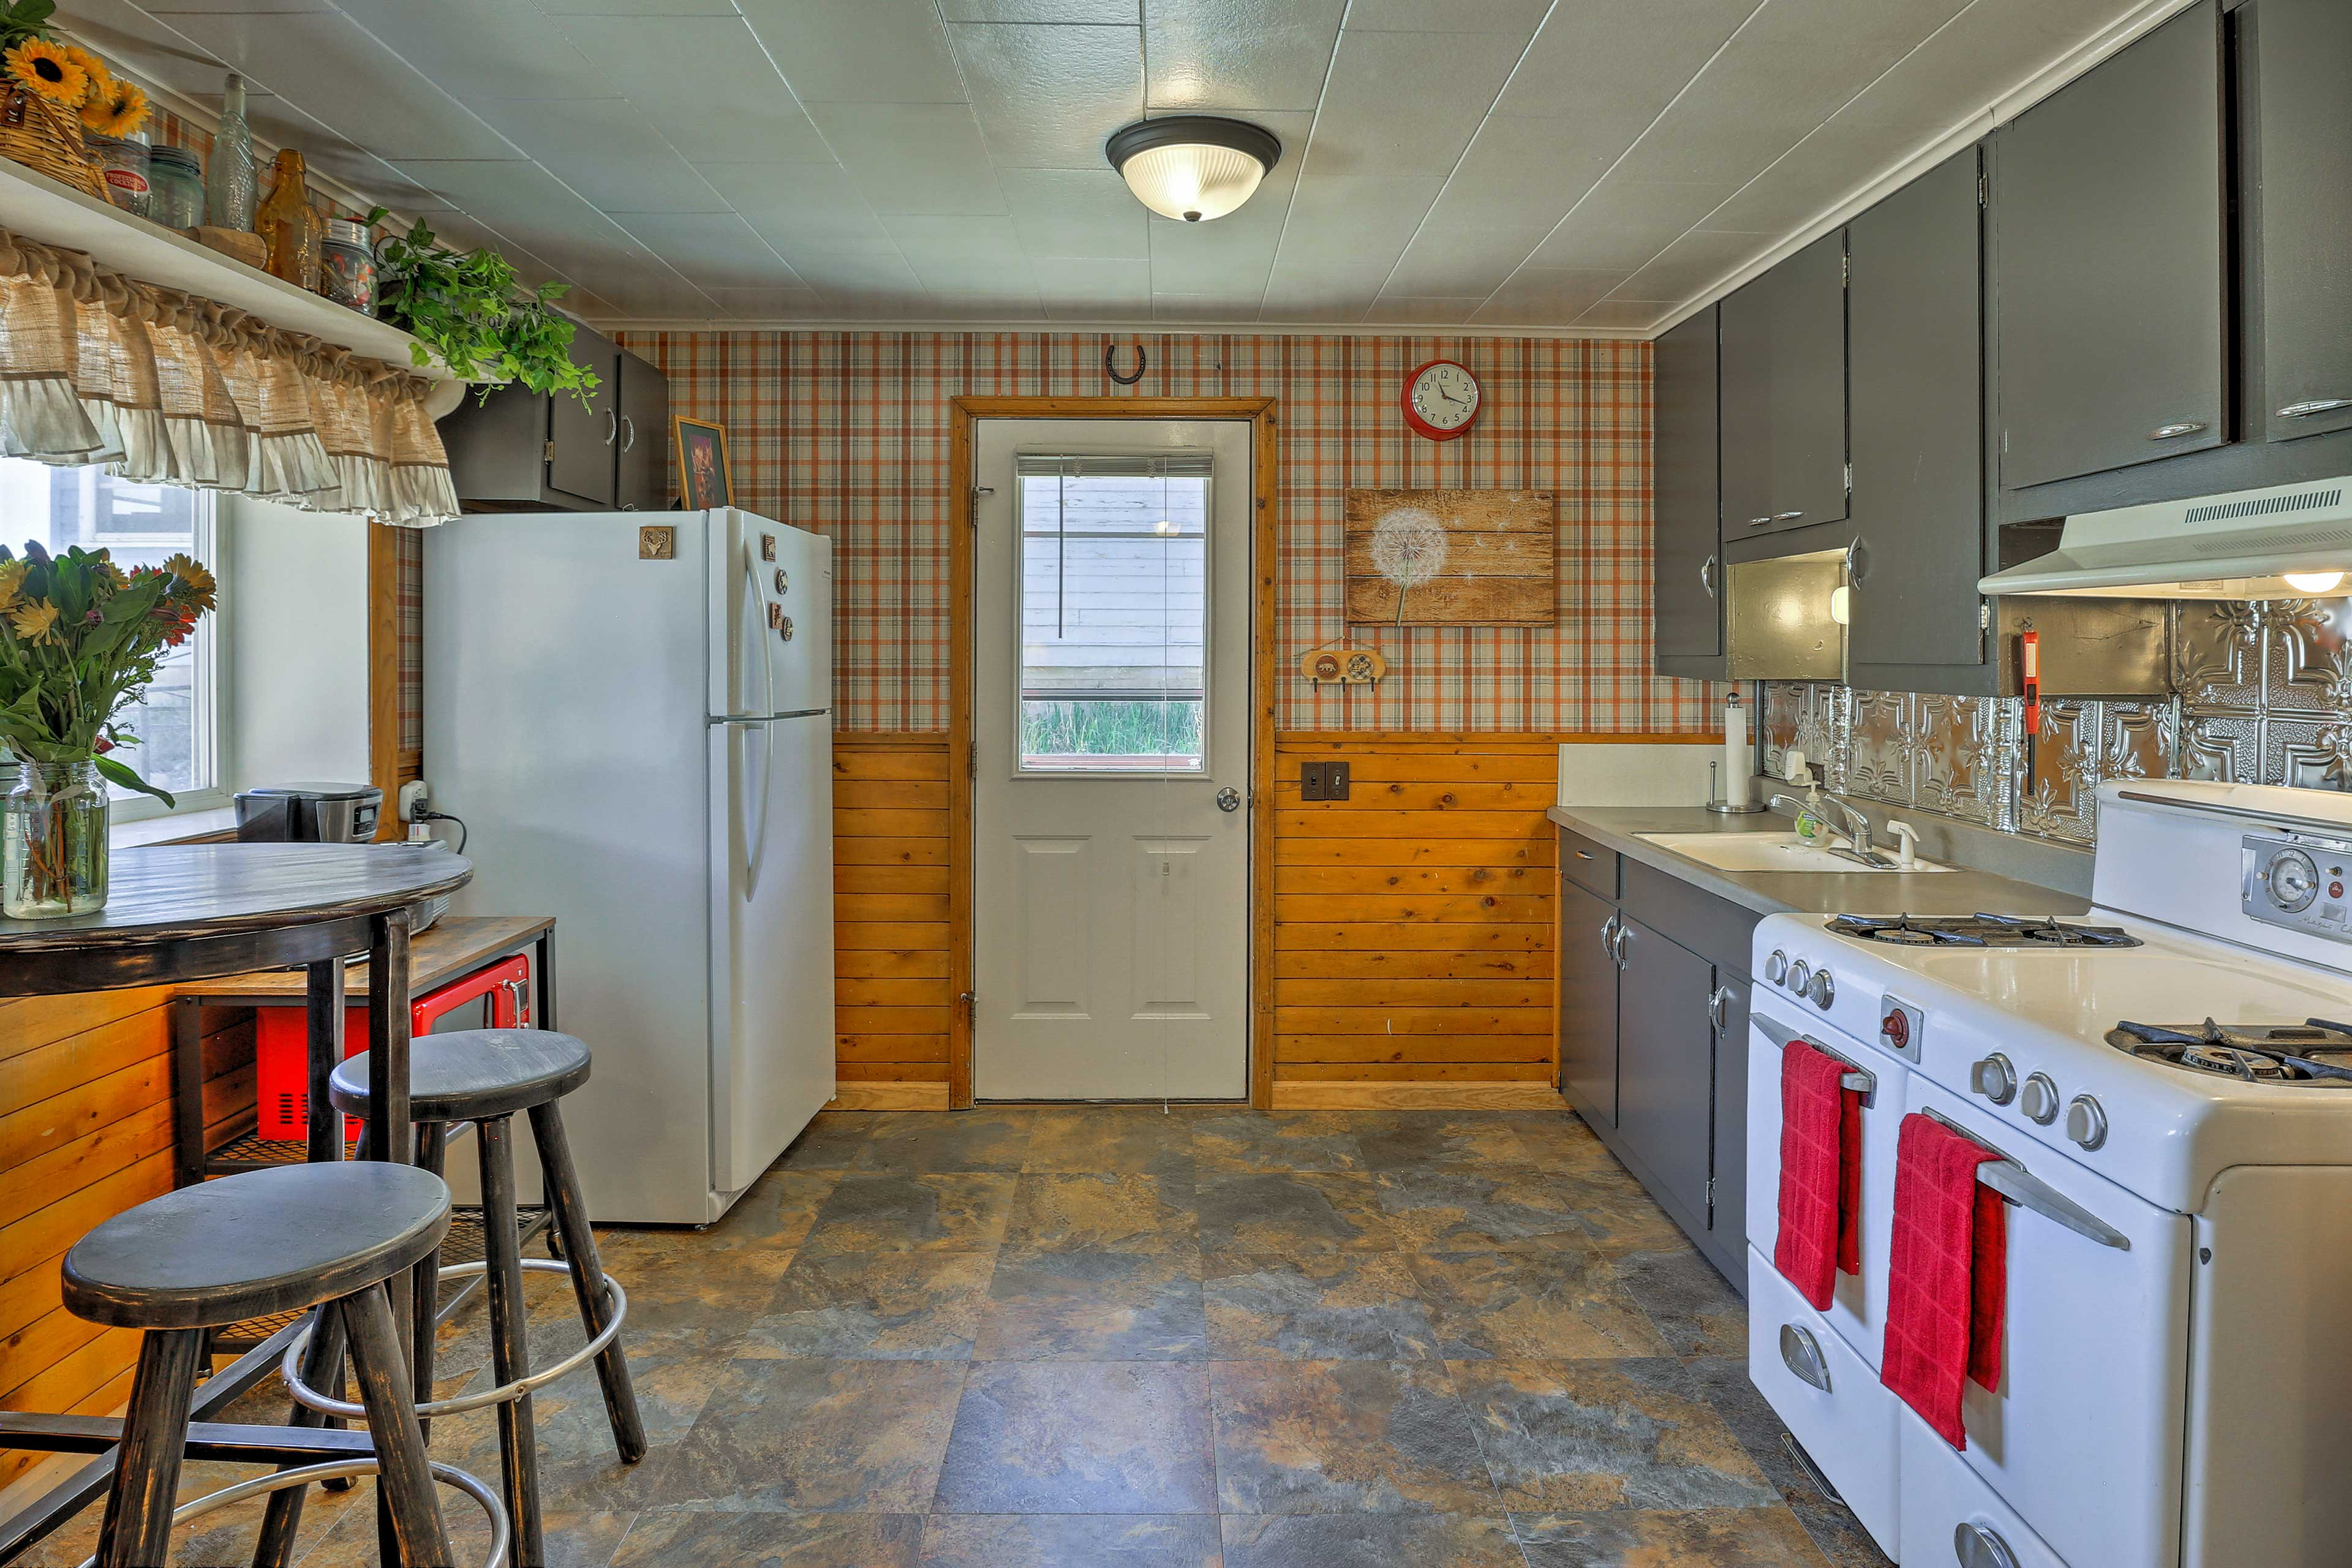 Cooking is a breeze in the fully equipped kitchen.